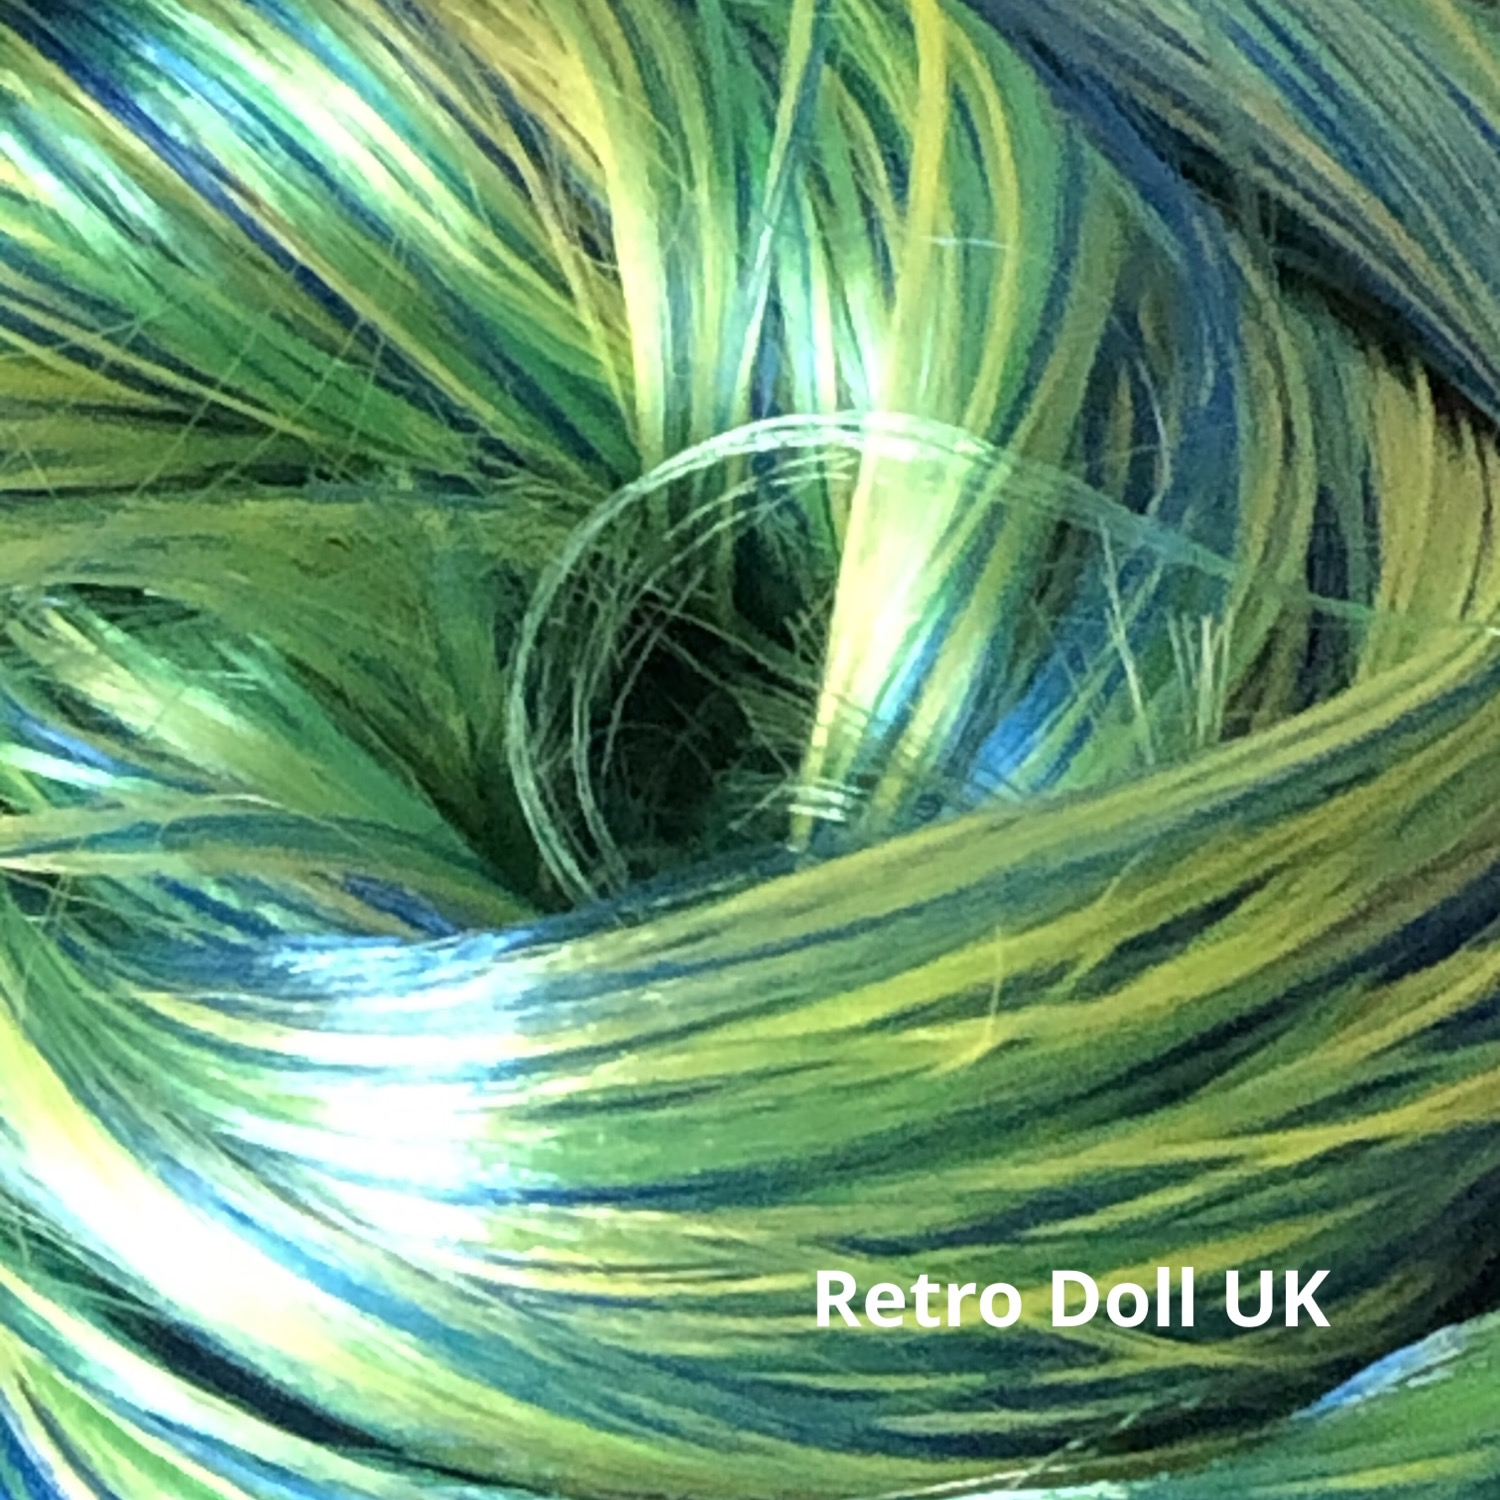 Retro Dolls UK Nylon doll hair for rerooting and customising dolls and My Little Pony